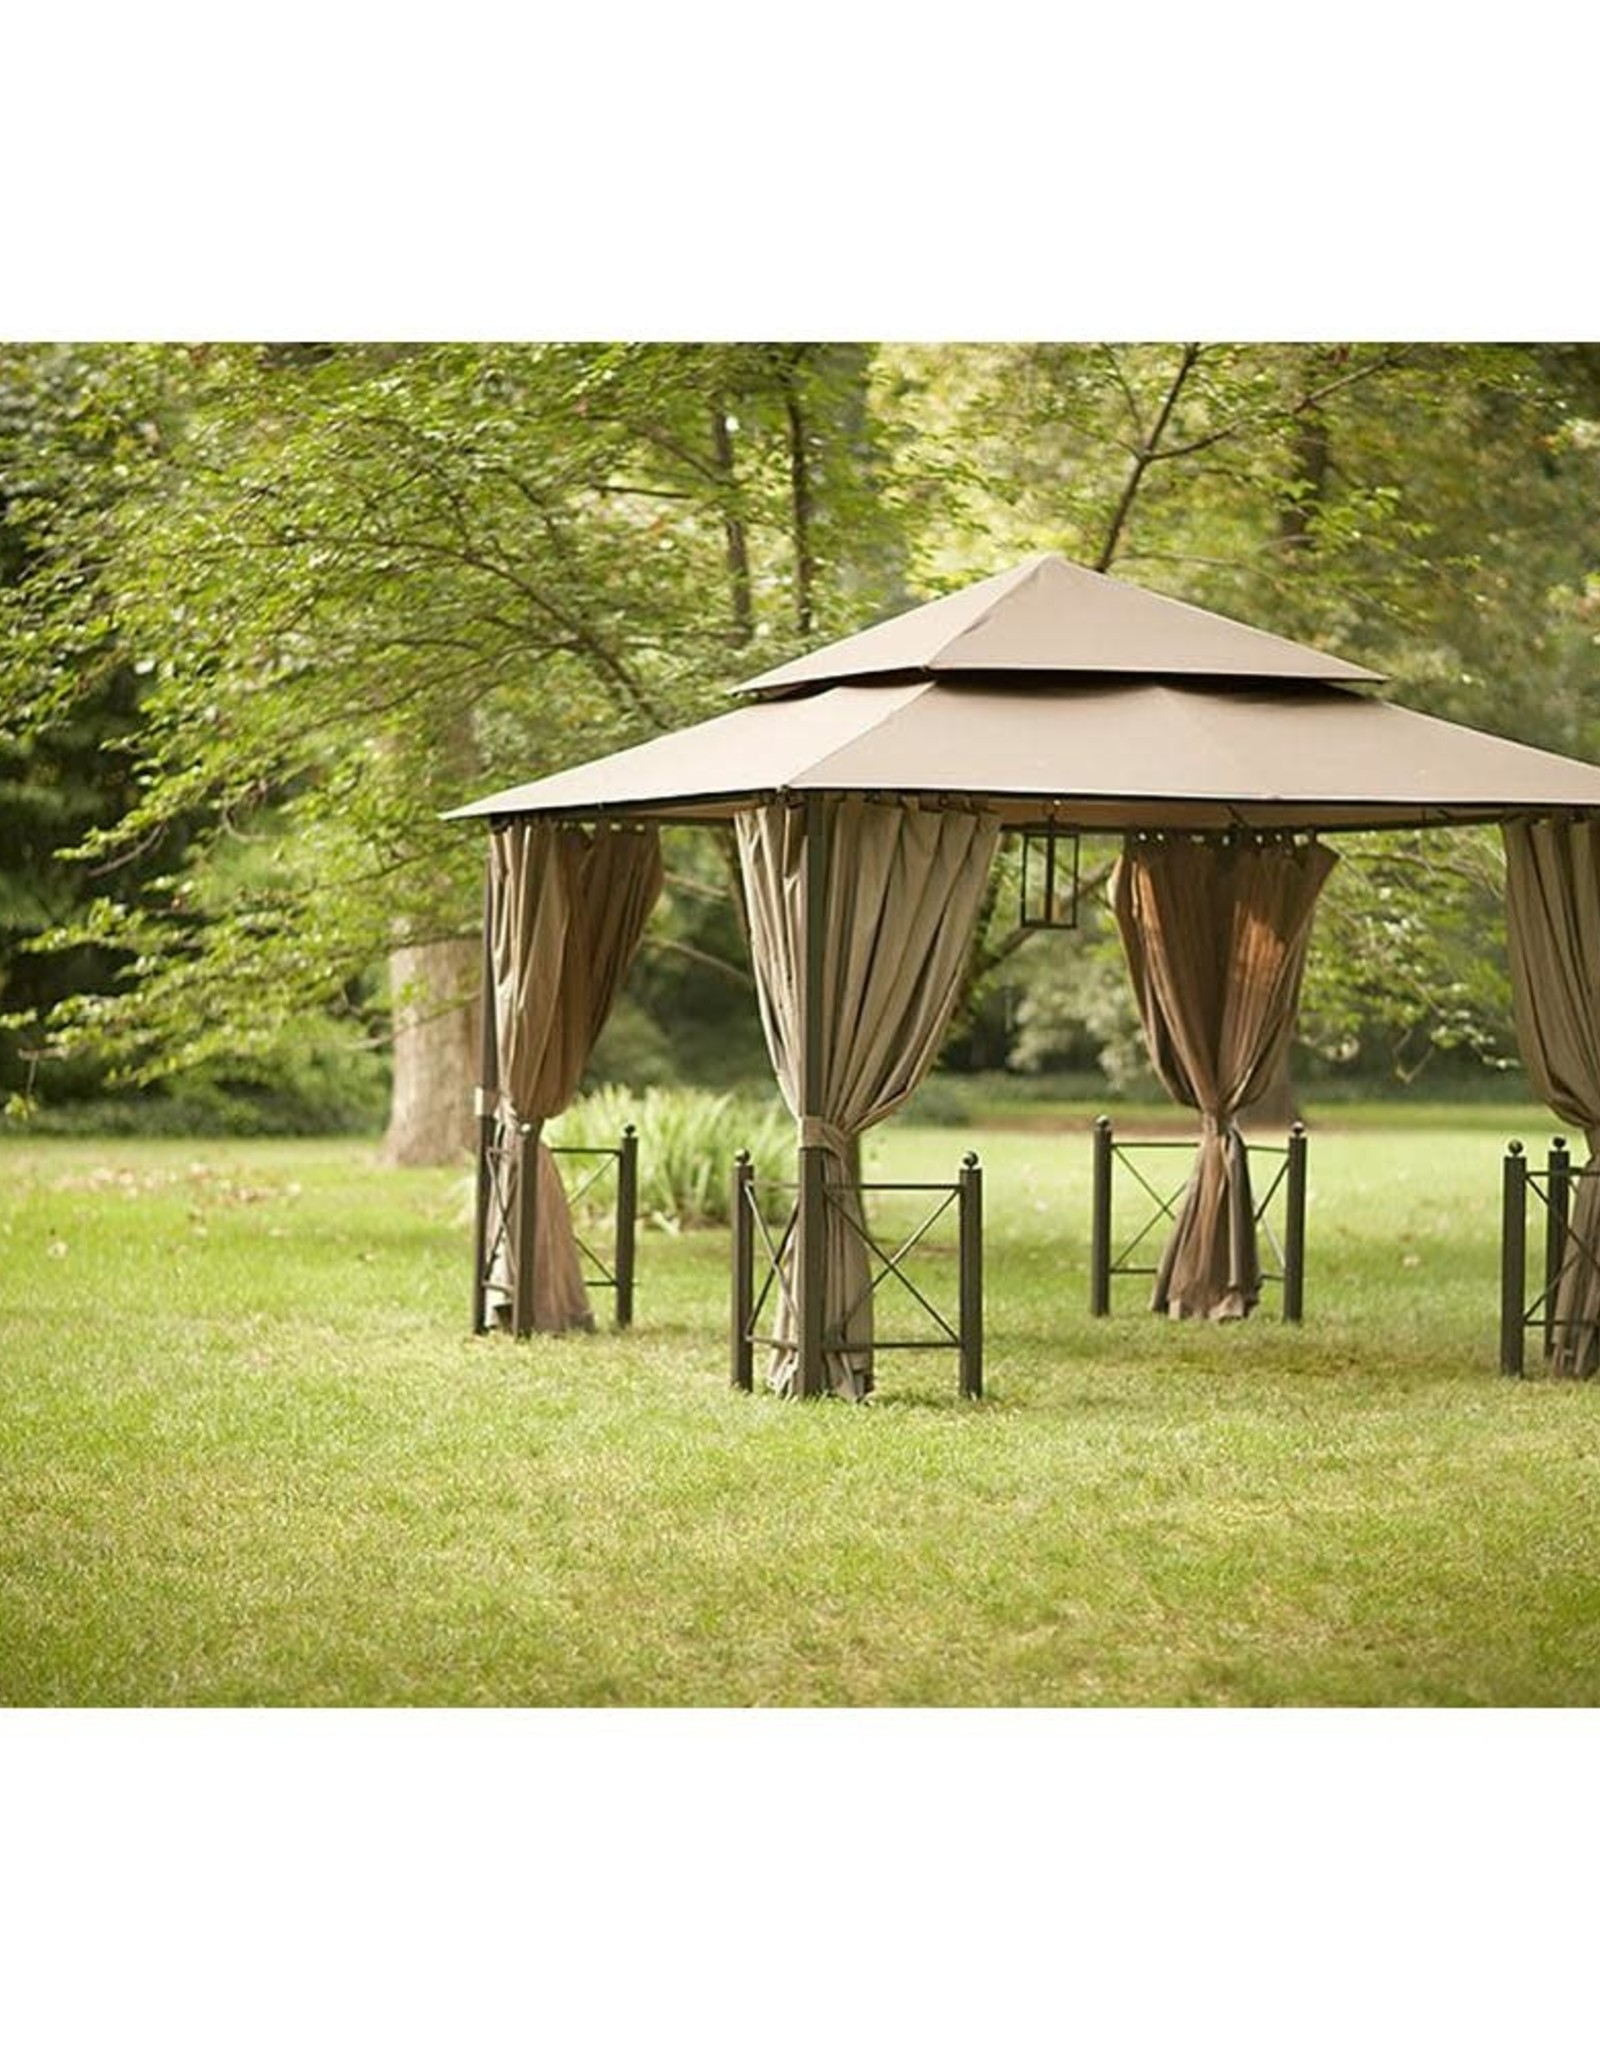 Replacement Canopy Outdoor Patio for 12 ft. x 12 ft. Harbor Gazebo